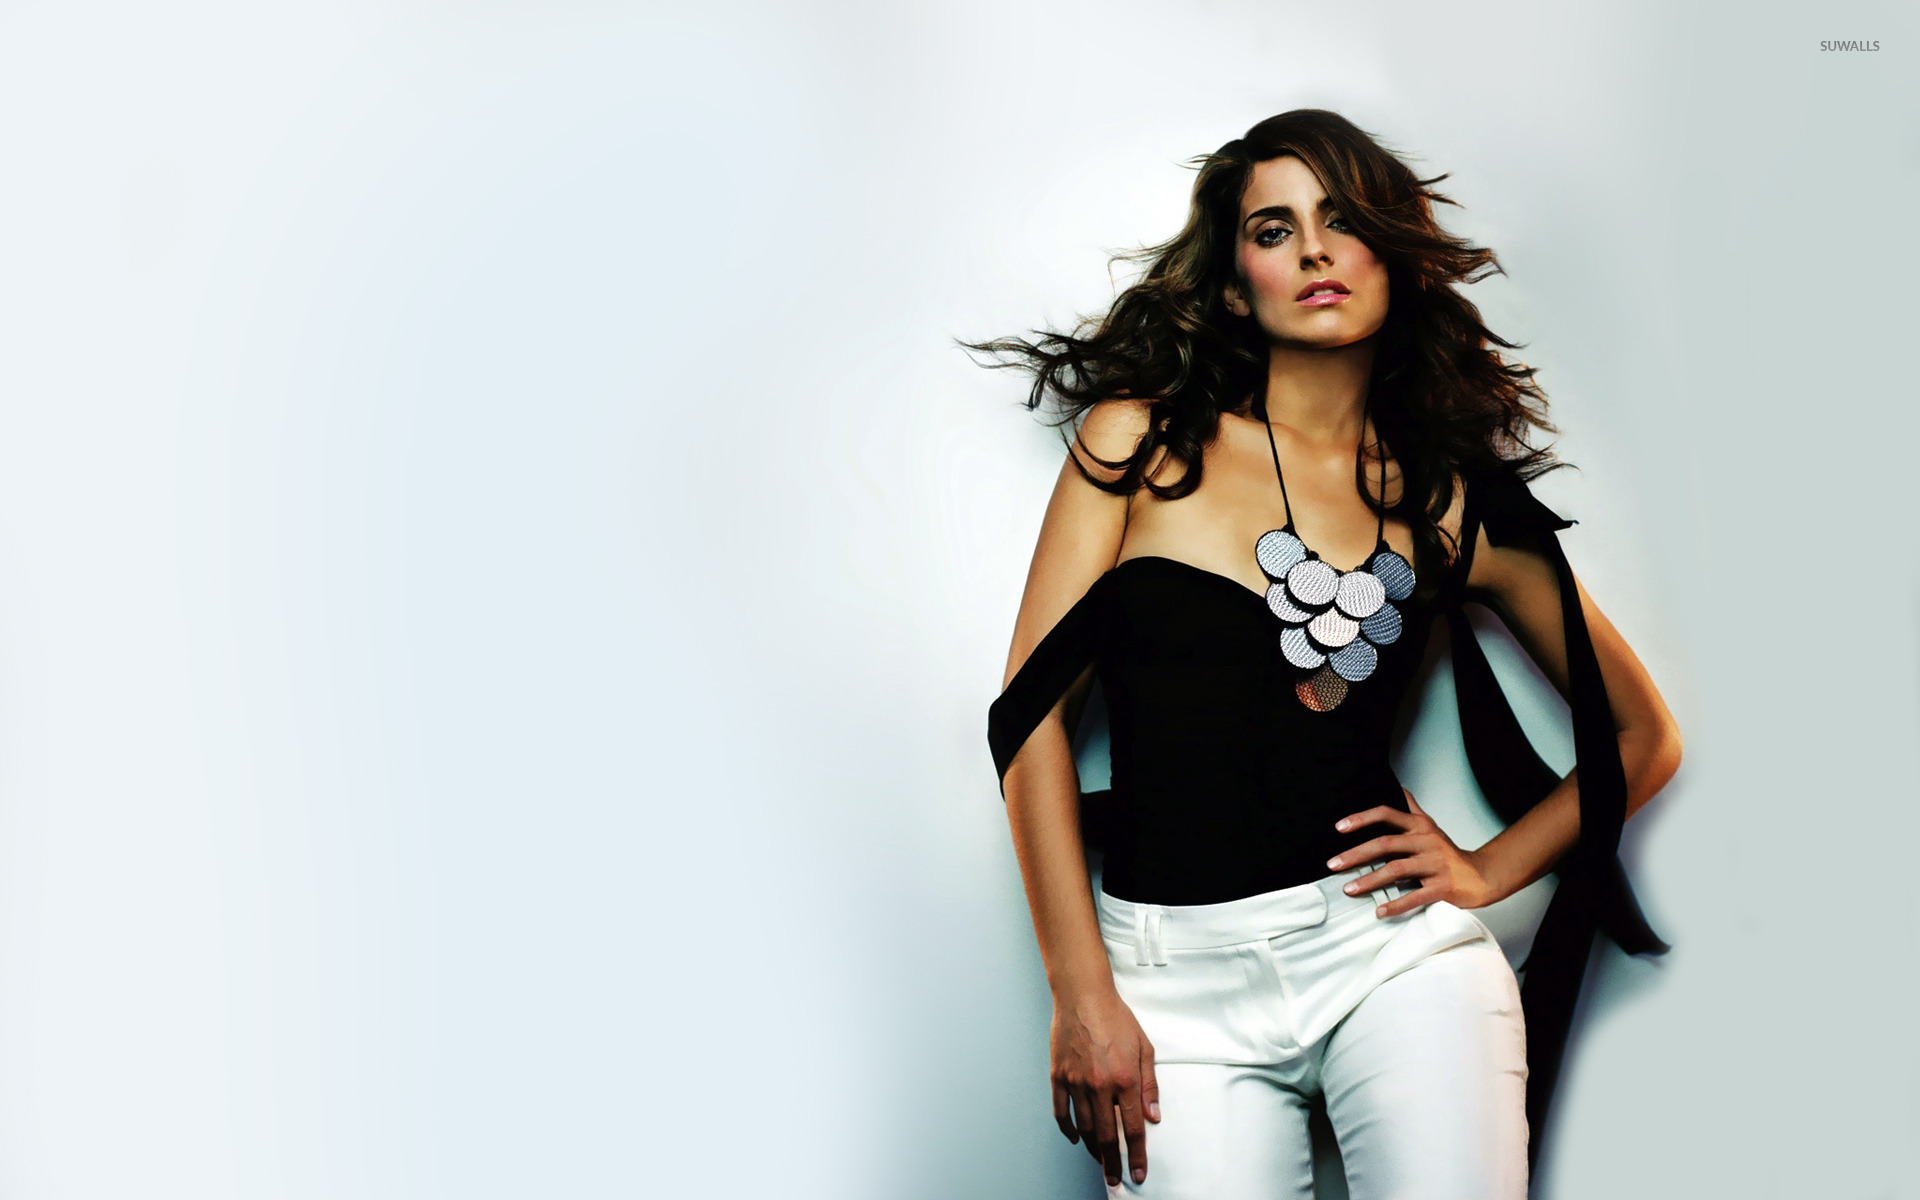 Nelly Furtado 5 Wallpaper Celebrity Wallpapers 12680 Images, Photos, Reviews